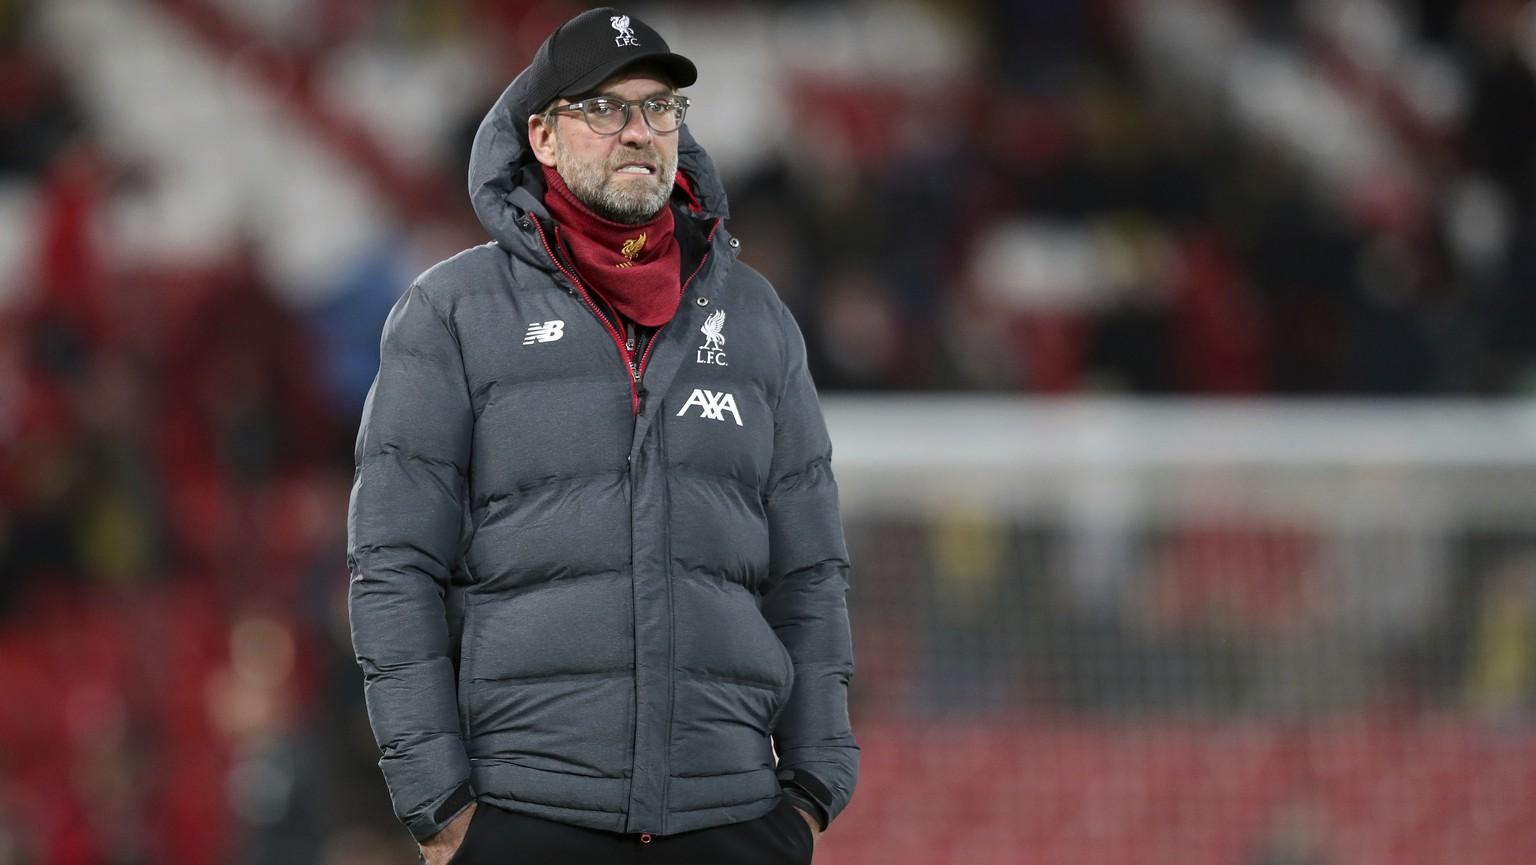 Liverpool's manager Jurgen Klopp looks on warm up before the English League Cup soccer match between Liverpool and Arsenal at Anfield stadium in Liverpool, England, Wednesday, Oct. 30, 2019. (AP Photo/Jon Super)